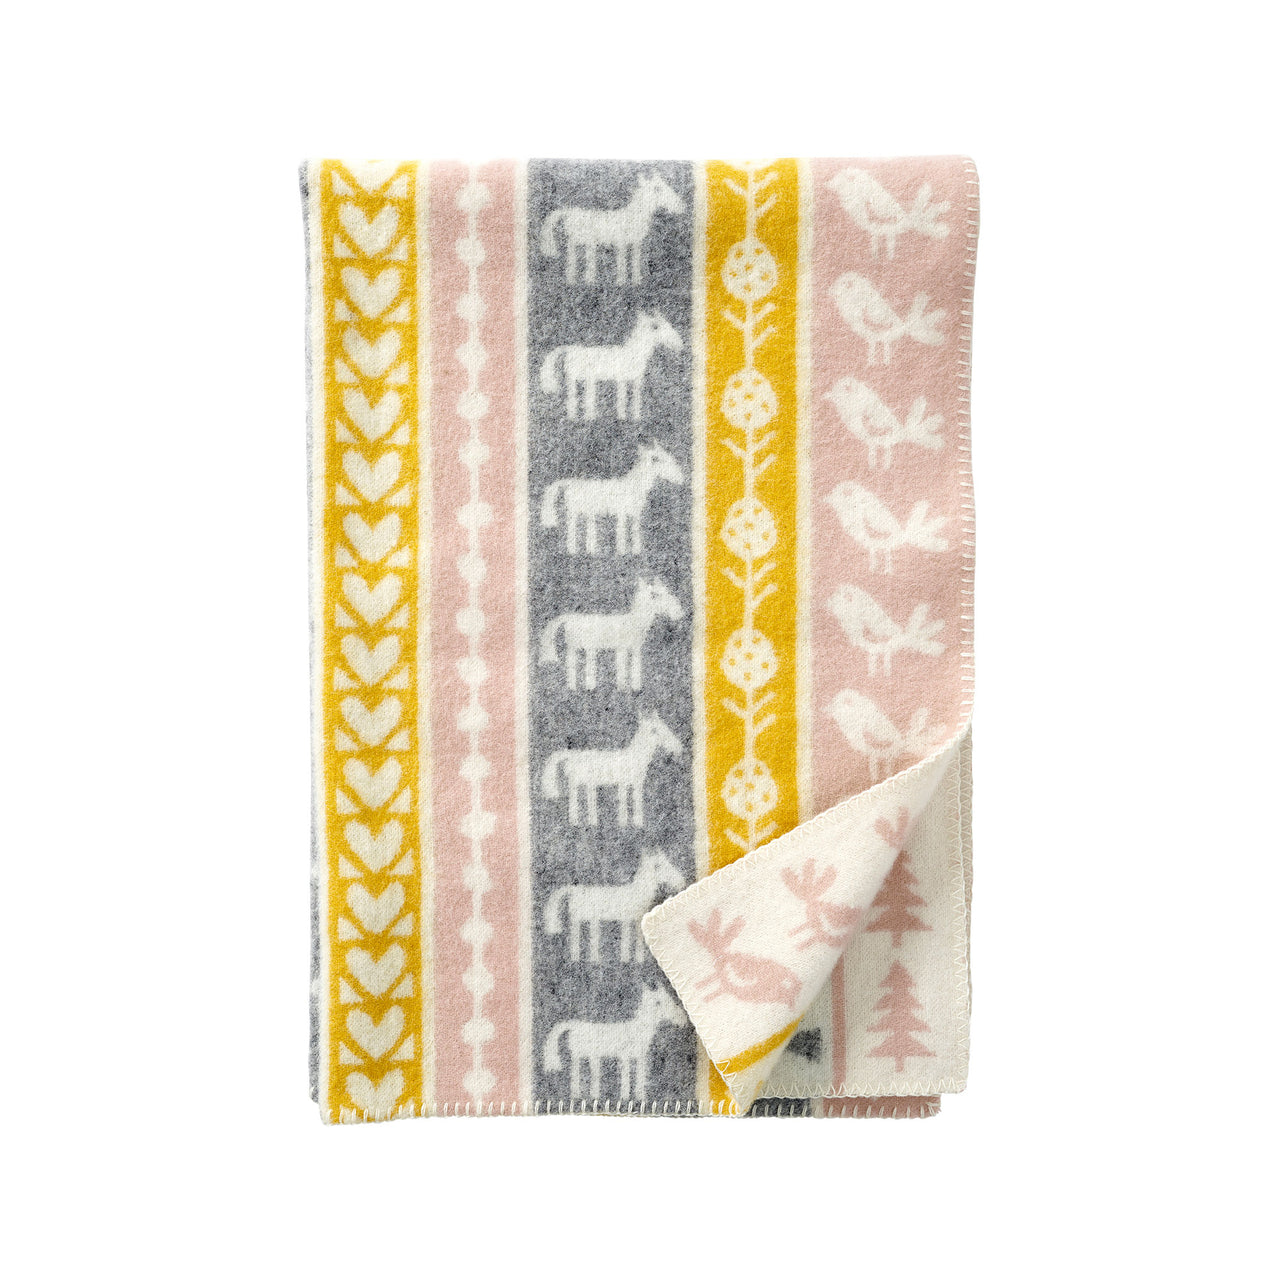 Nature Yellow/Pink 65x90cm Eco Lambswool Blanket